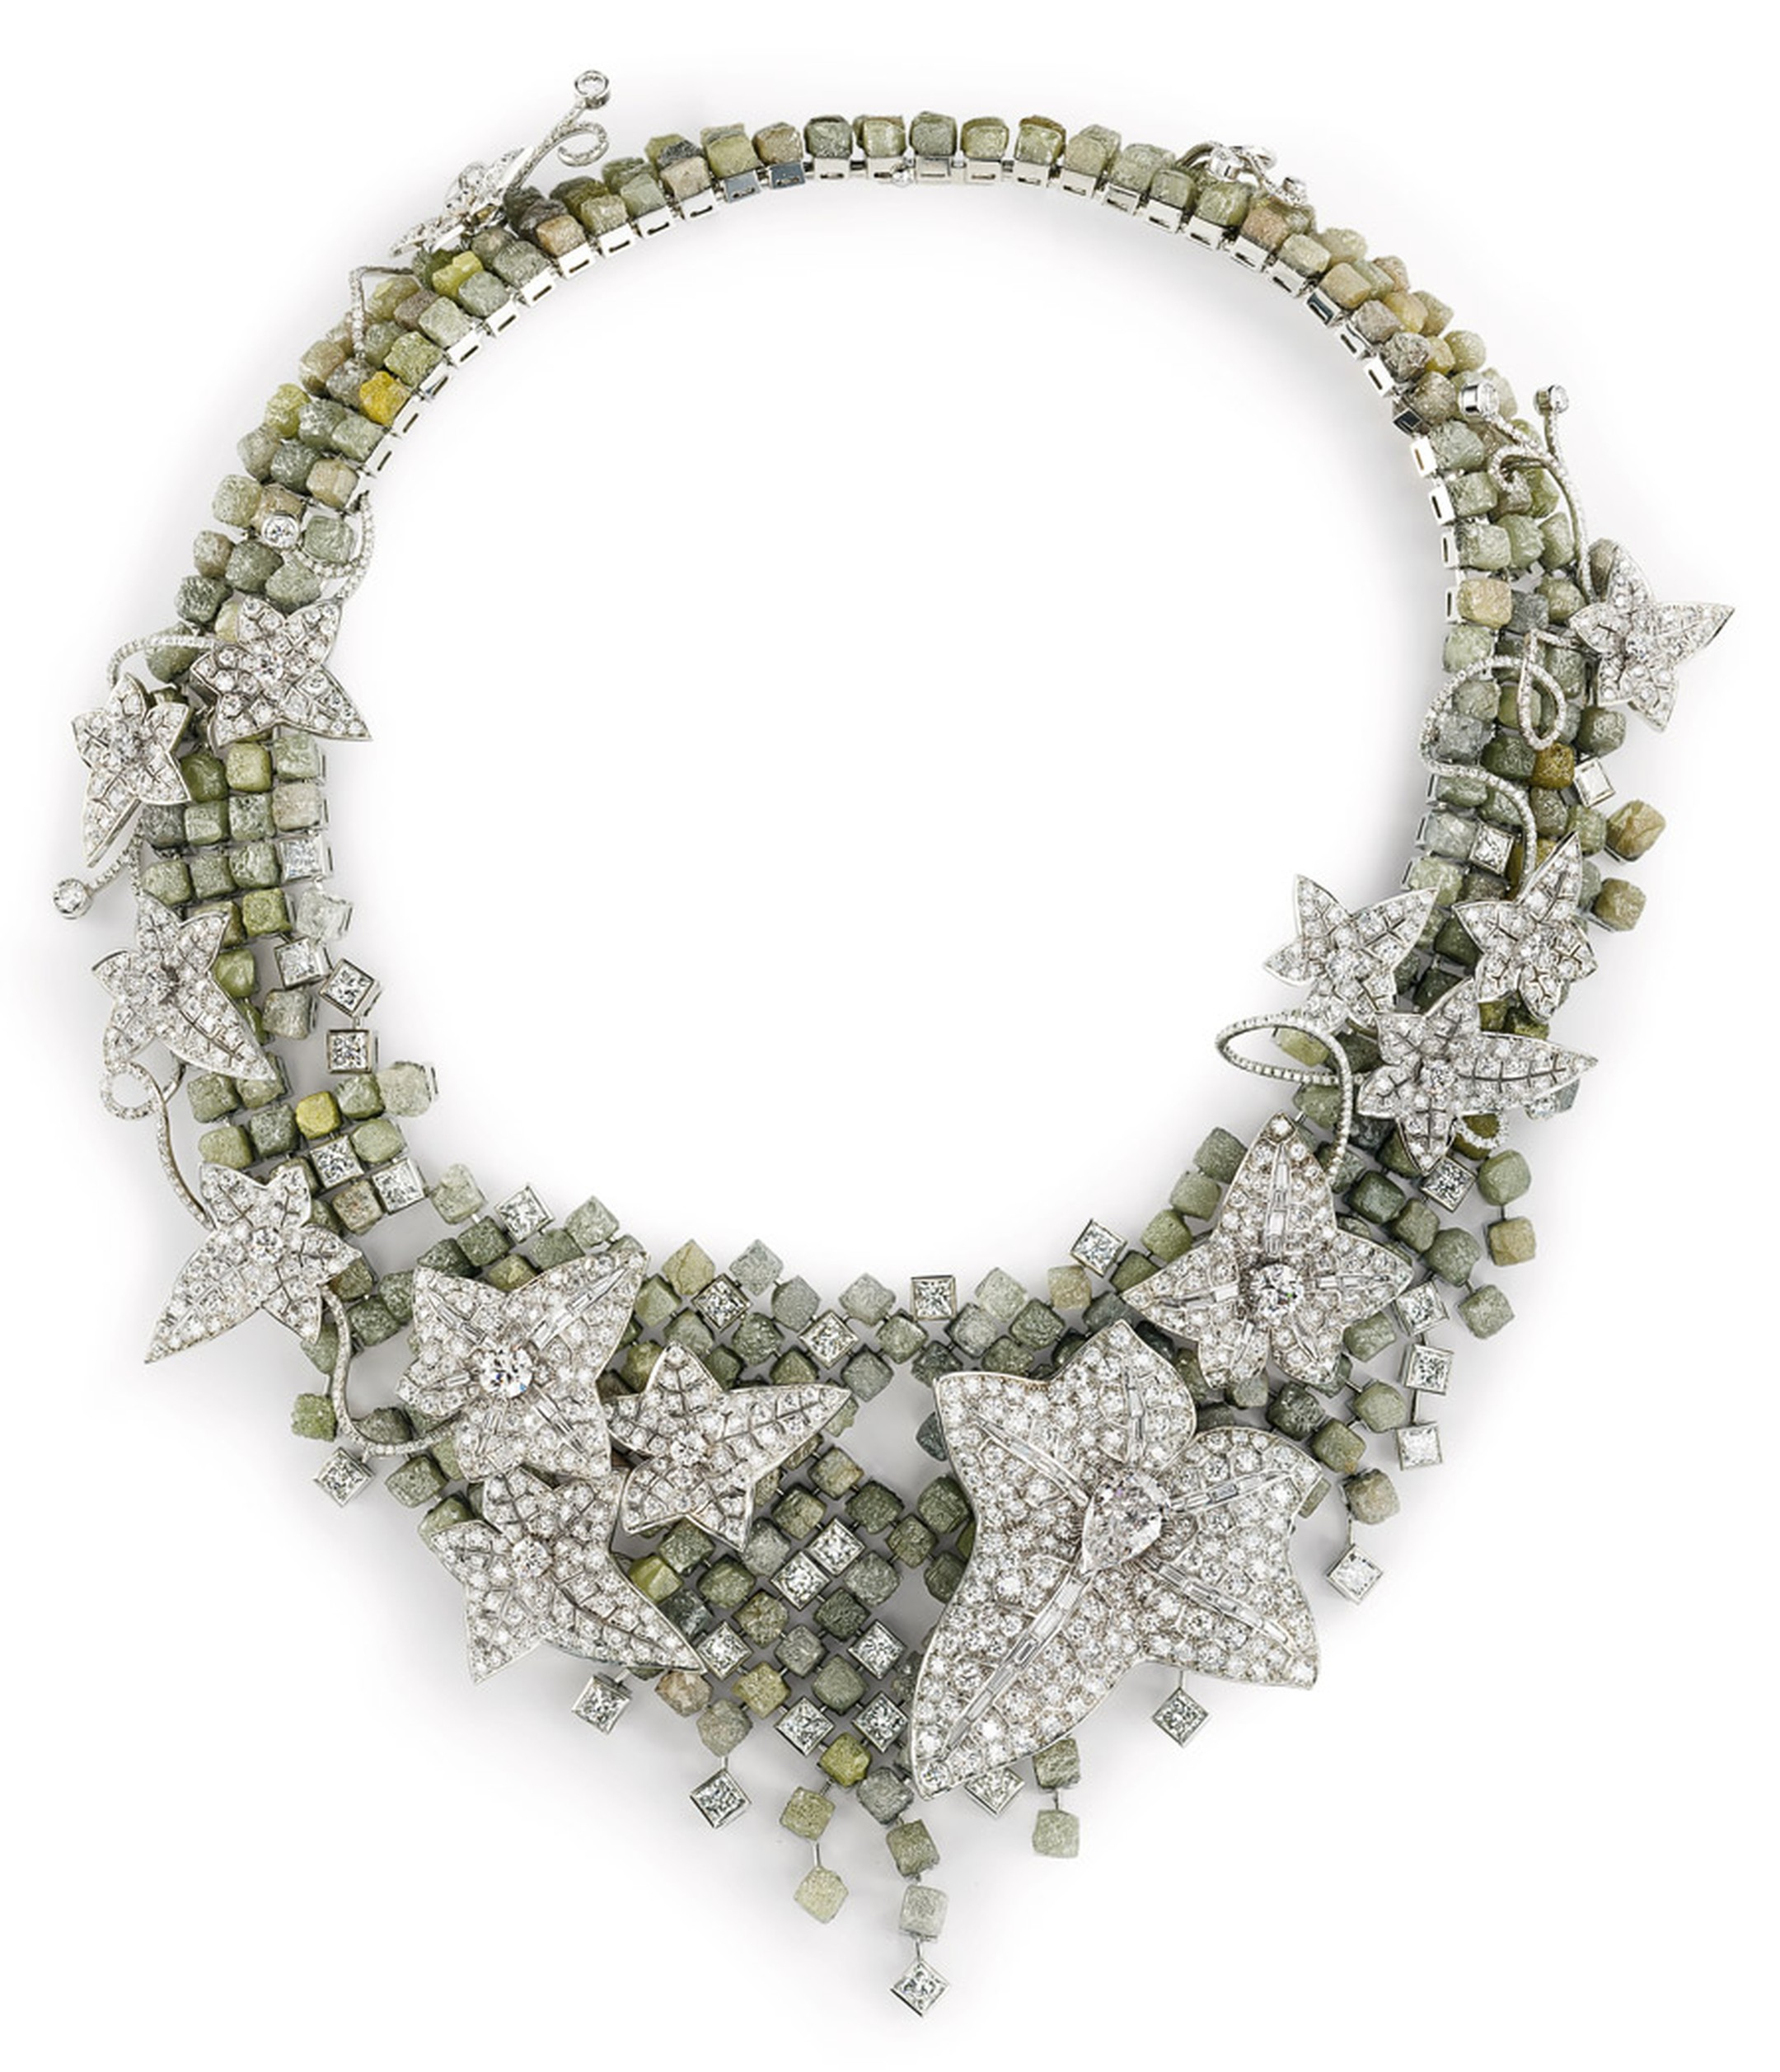 Boucheron Lierre de Paris rough and faceted diamond necklace, unveiled at the 2012 Biennale des Antiquaires